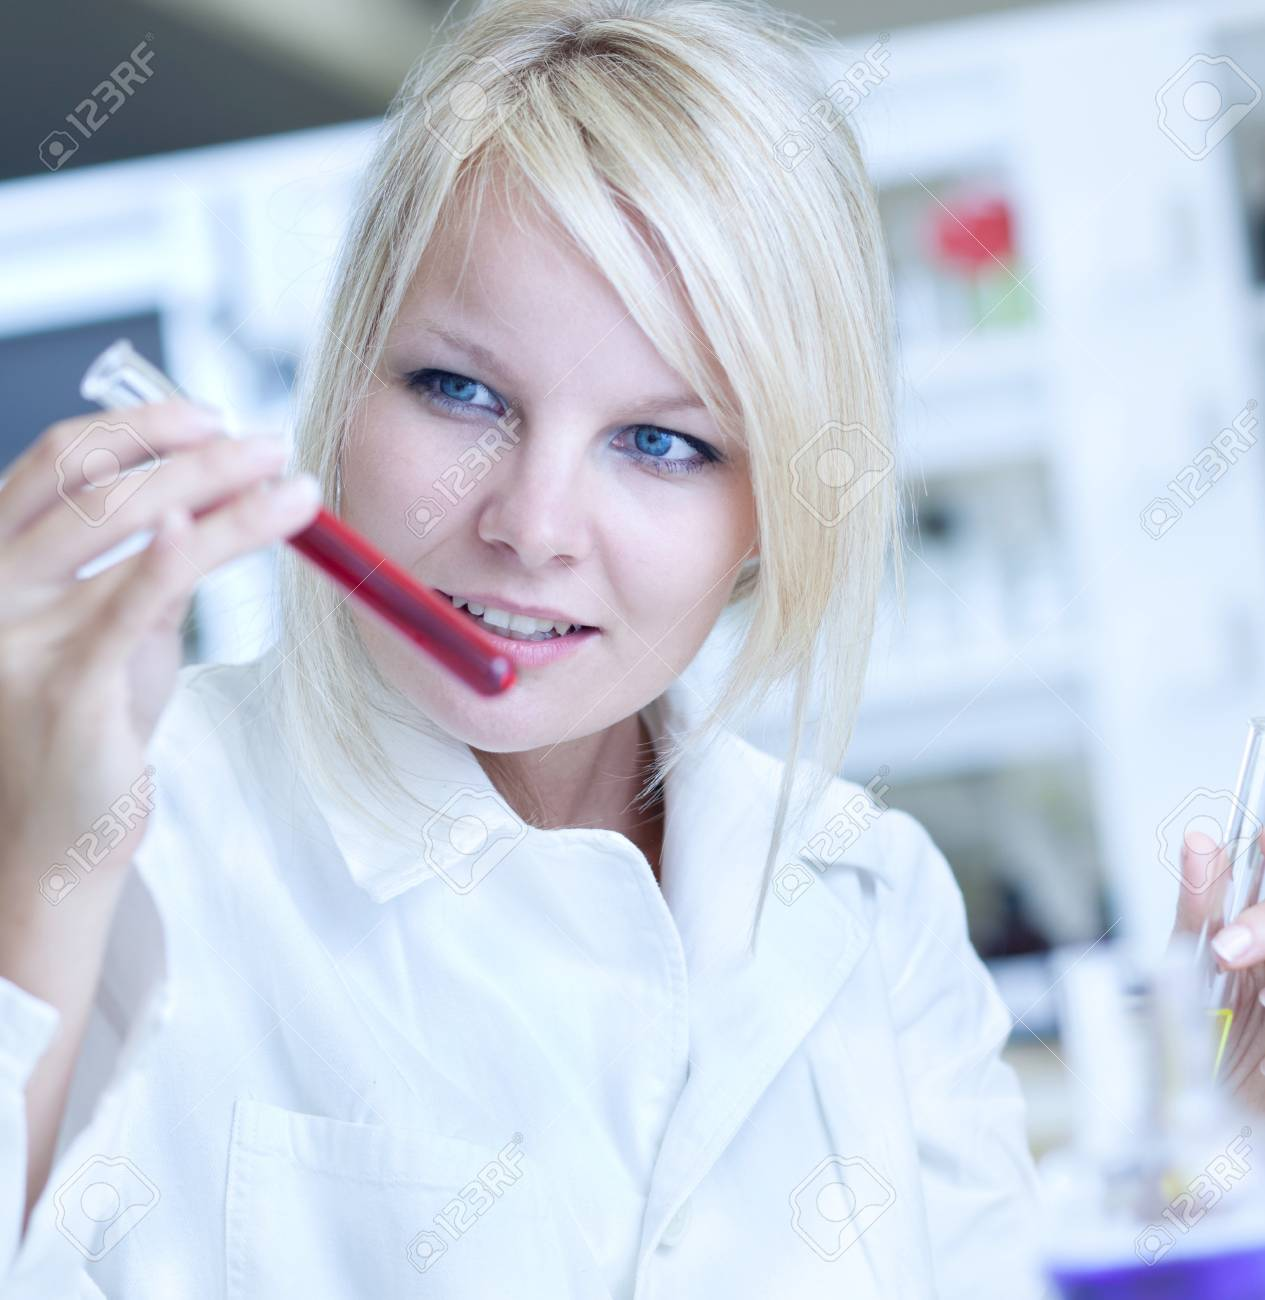 Closeup of a female researcher holding up a test tube and a retort and carrying out some experiments Stock Photo - 9793692